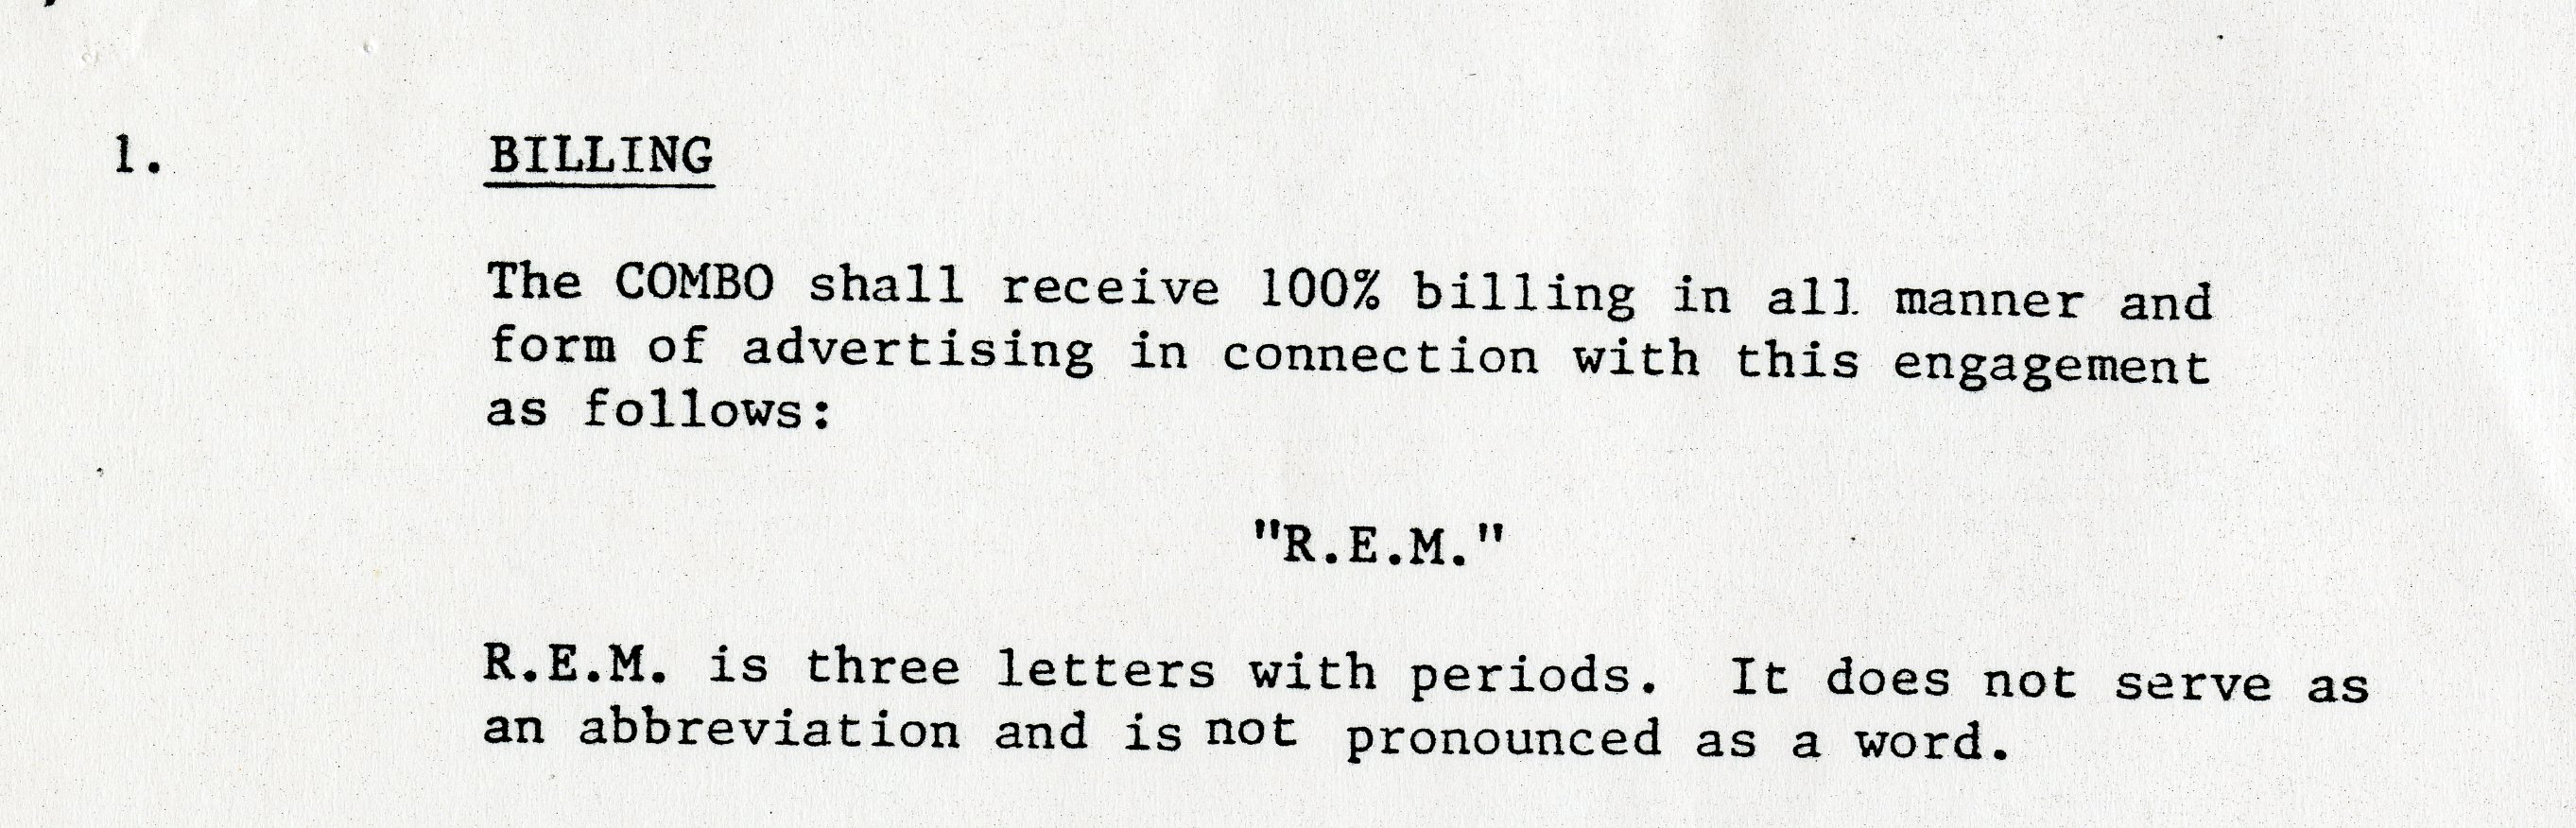 R.E.M. makes it clear in their contract - it is not an abbreviation or a word.